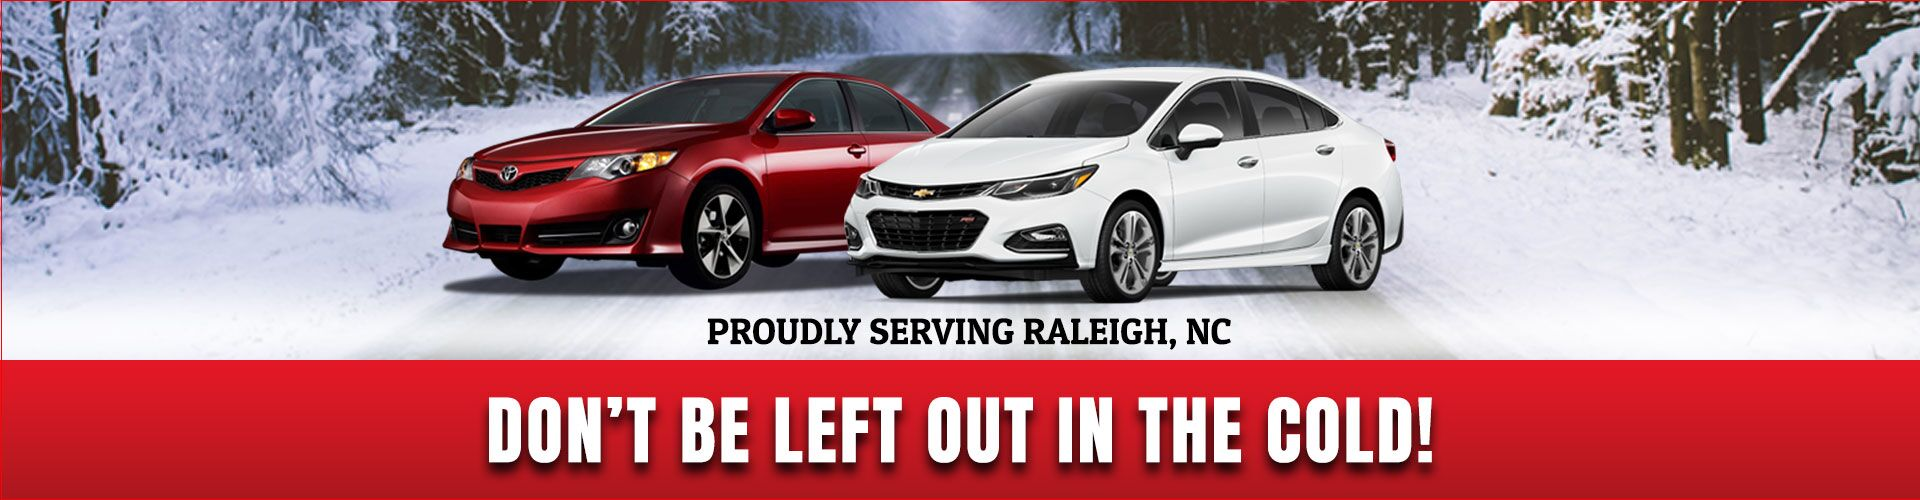 Car Service And Maintenance In Raleigh Nc